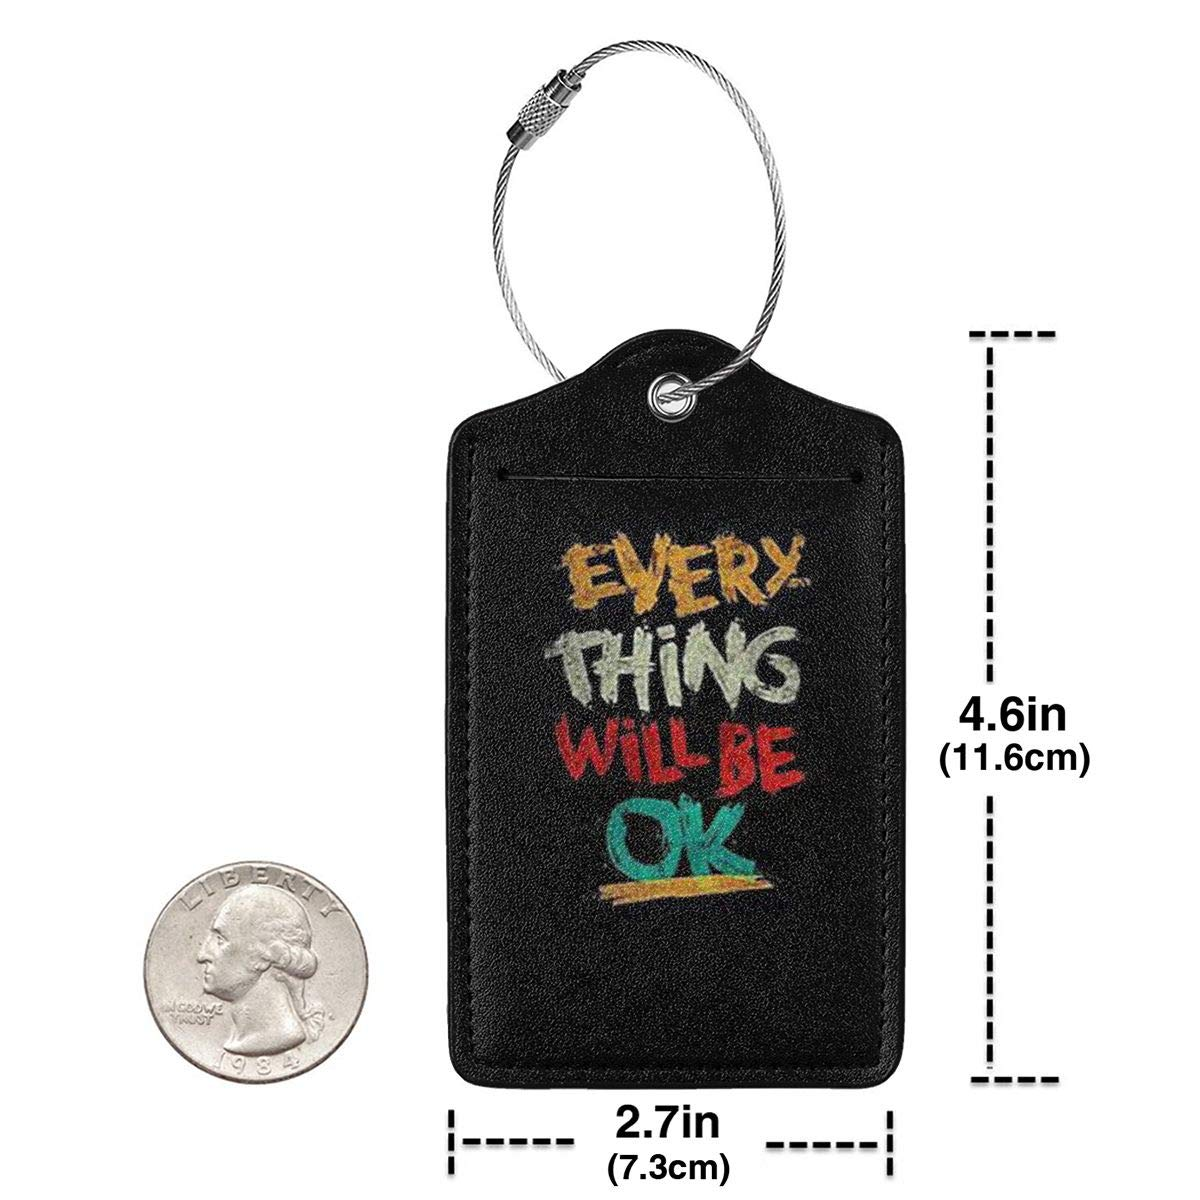 Fashion Every Thing Will Be Ok Soft Leather Luggage Tags With Privacy Cover 1-4 Pcs Choose Suit For Travel,Vacation